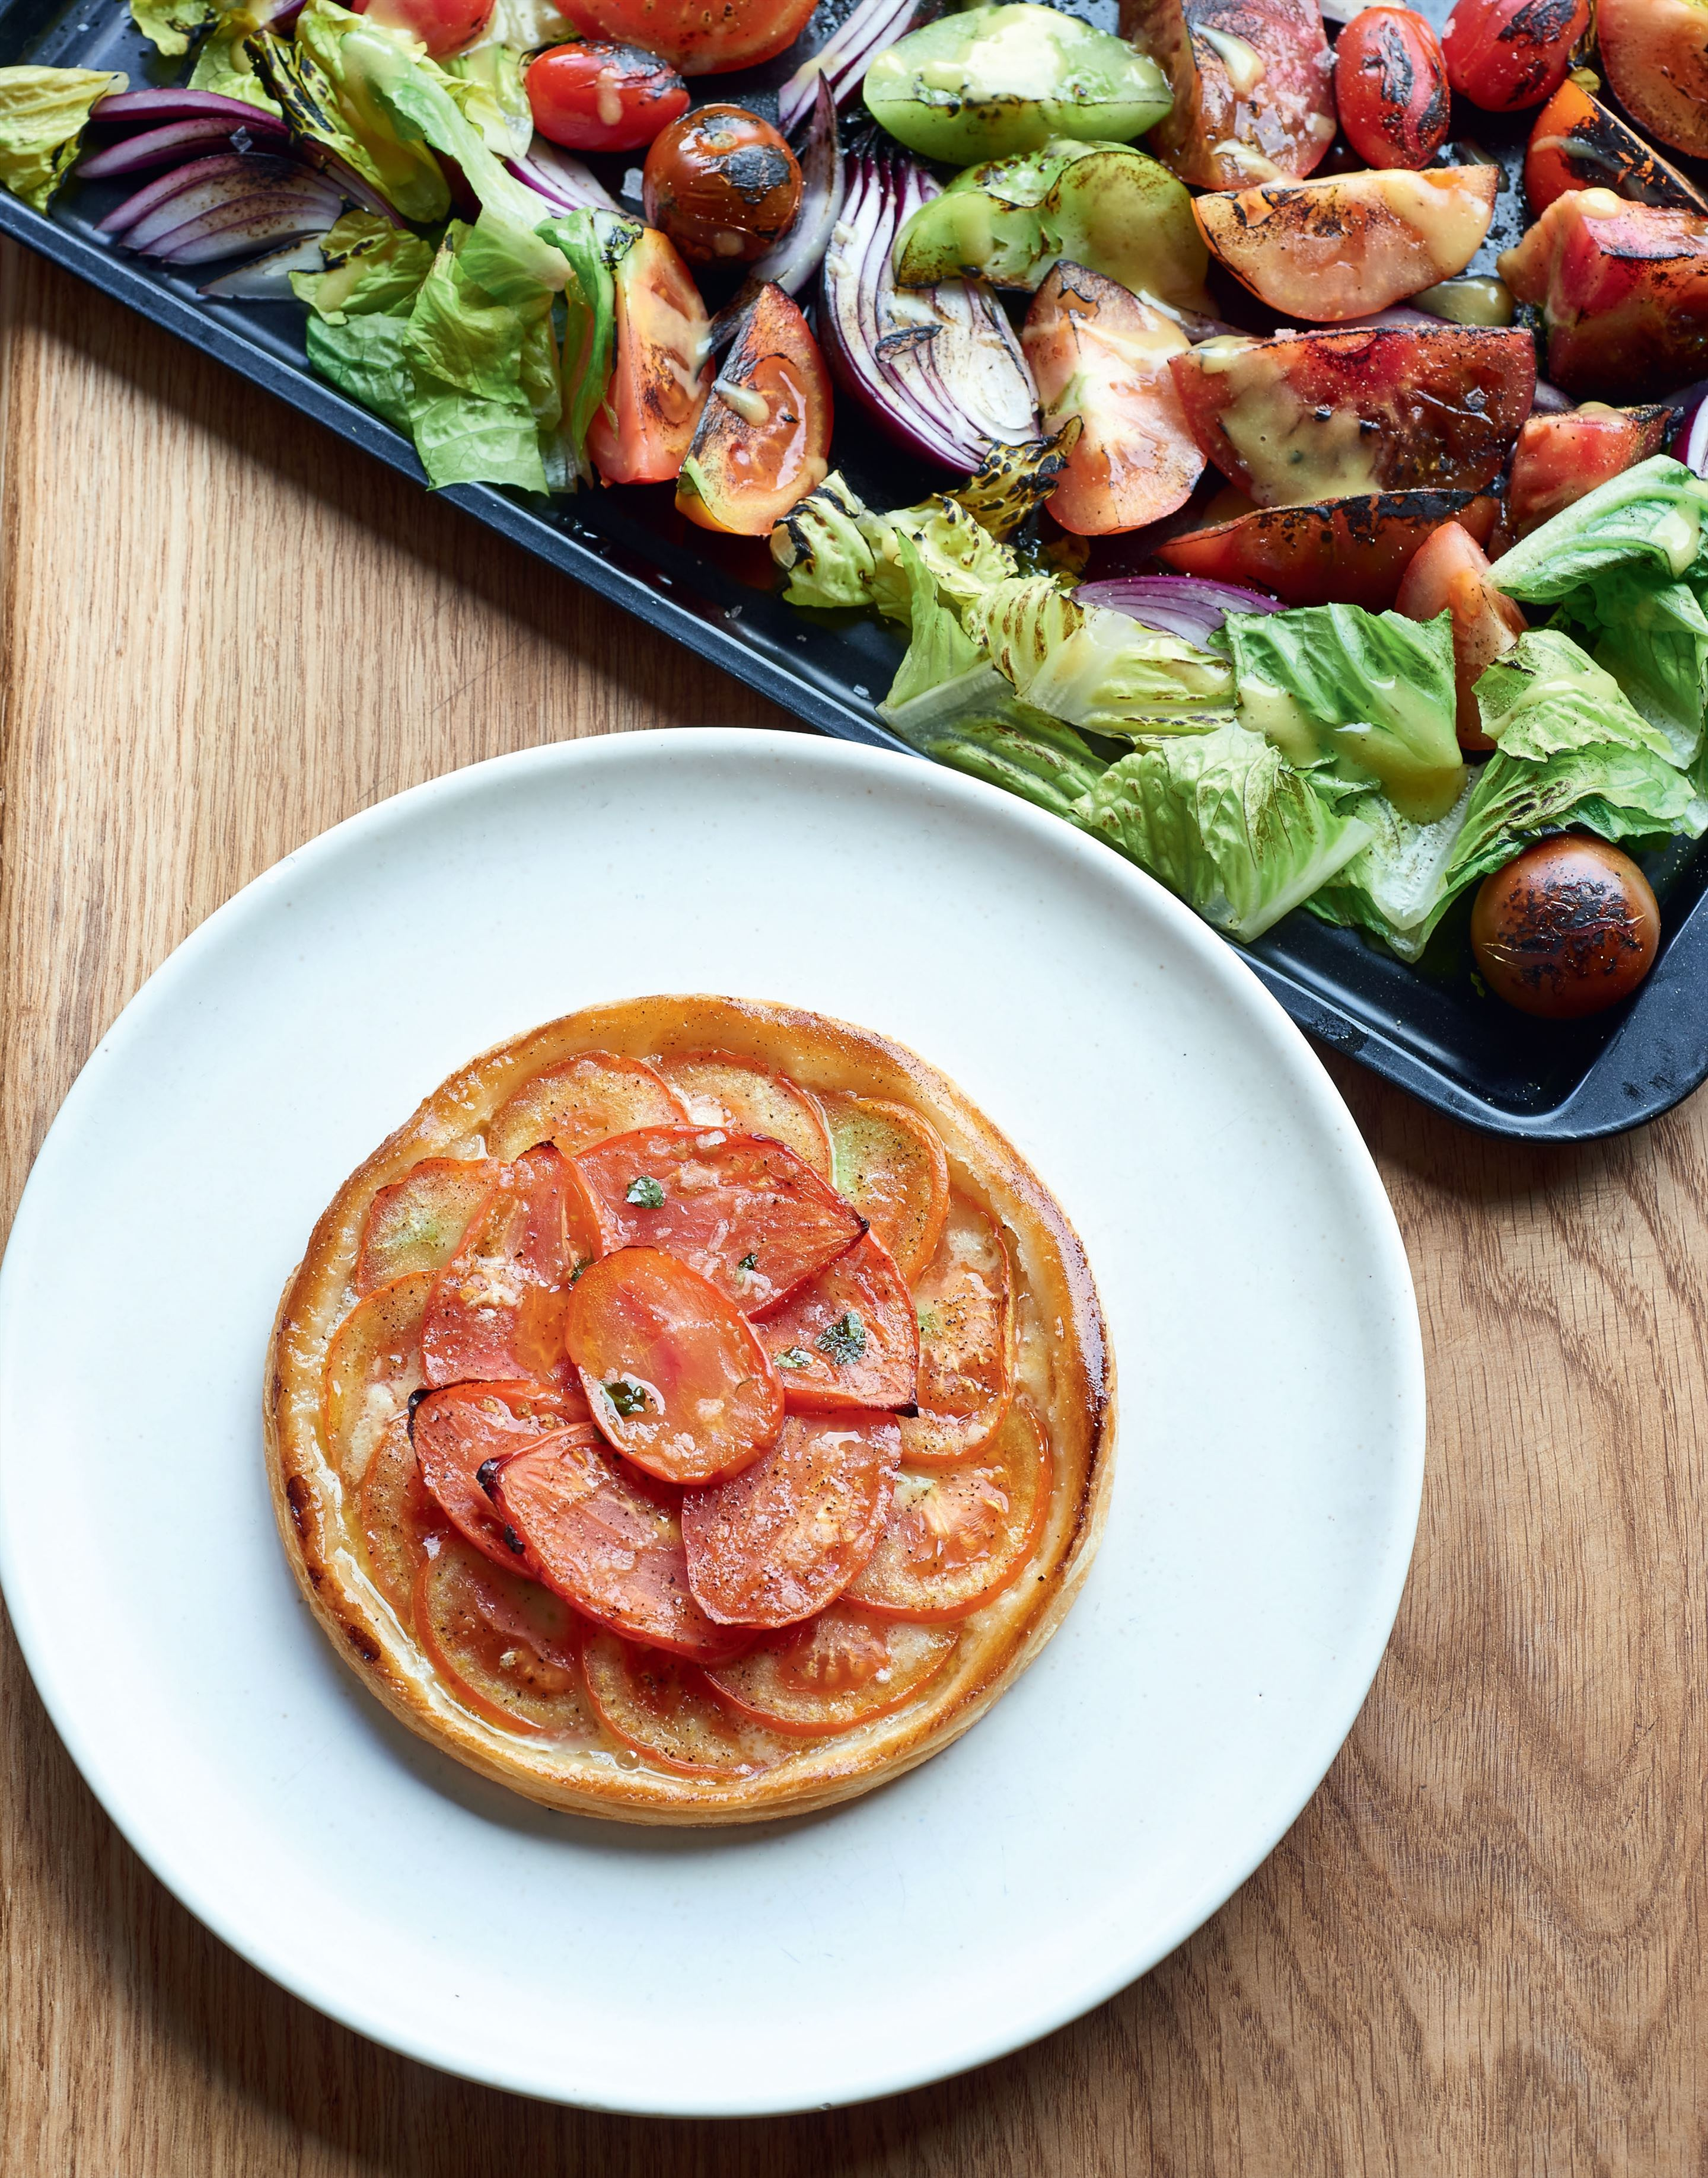 Tomato tarts with blowtorched salad